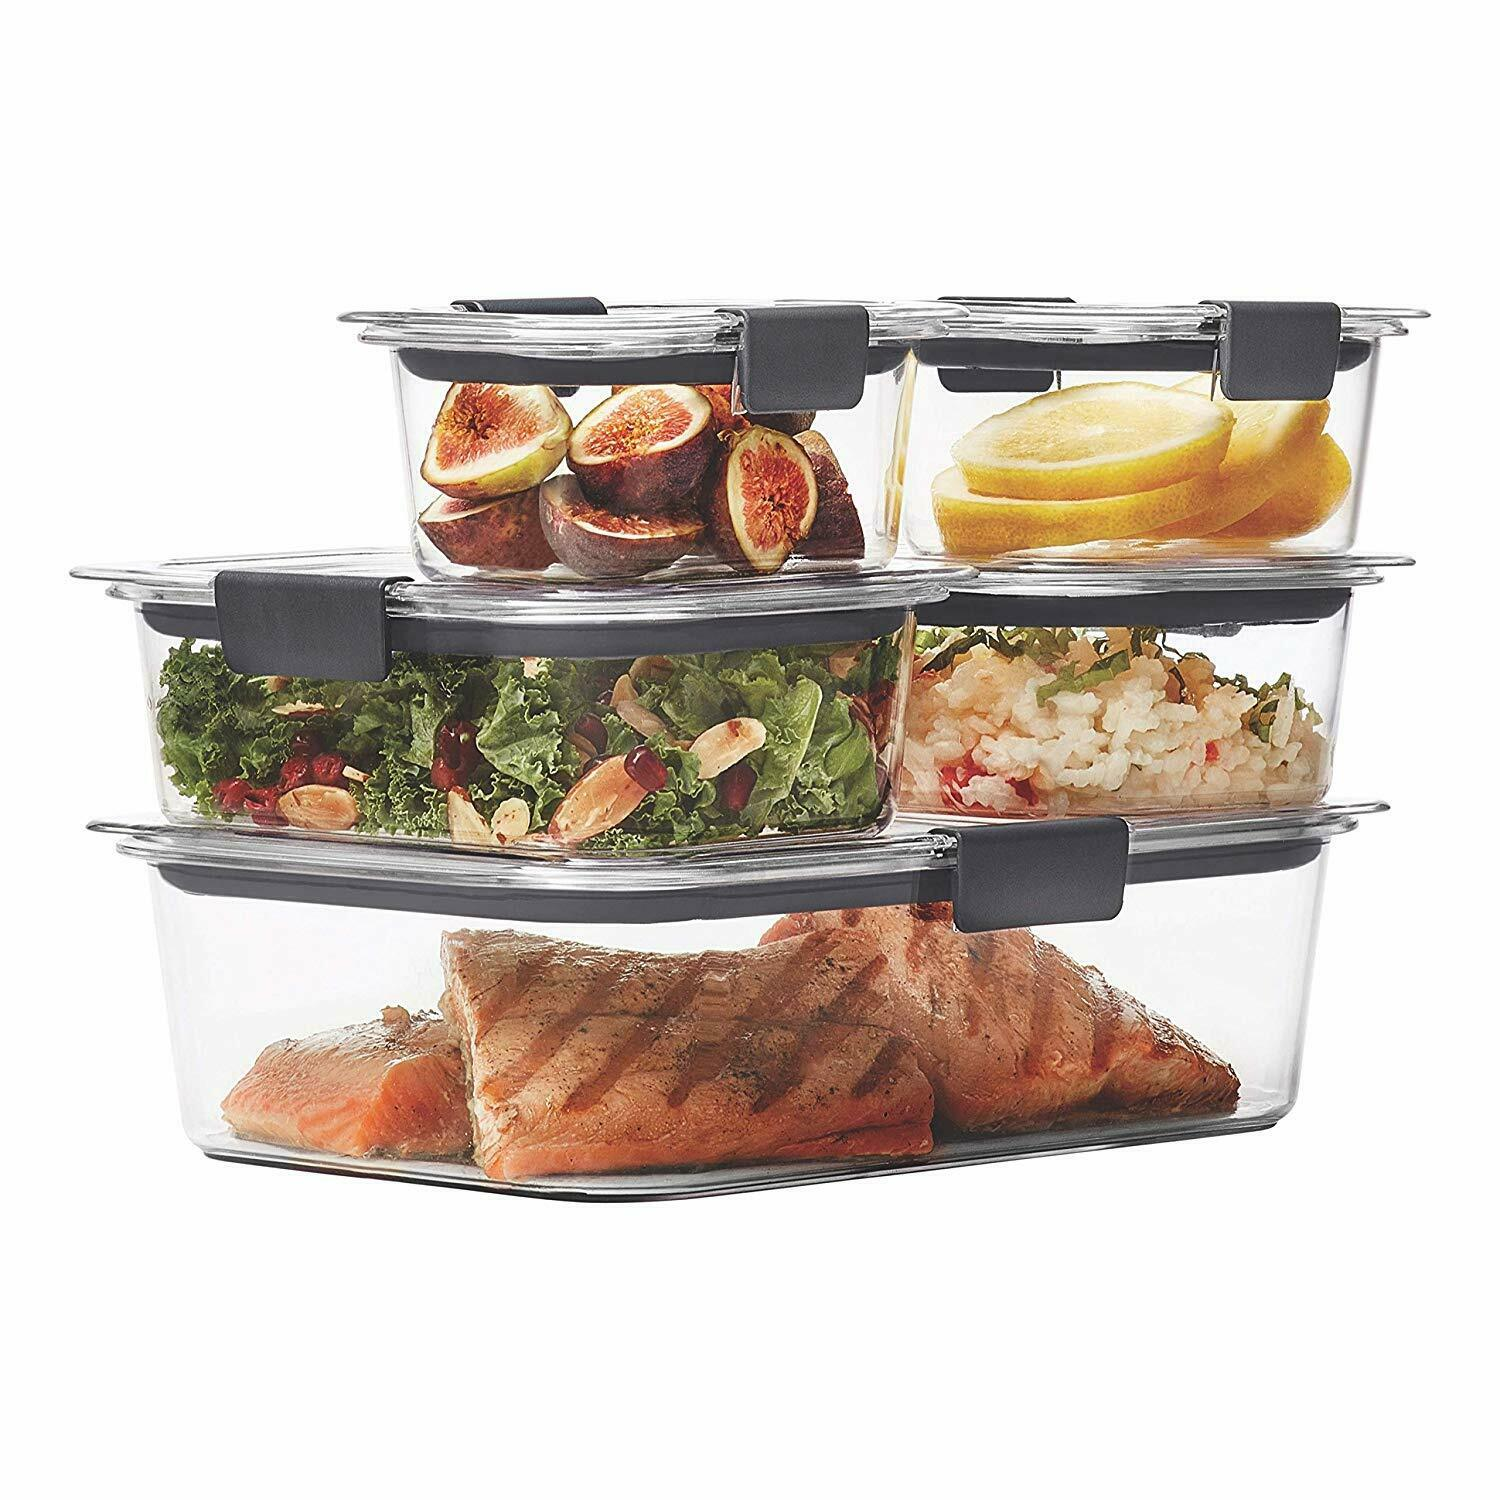 Rubbermaid Brilliance Leak-Proof Food Storage Containers with Airtight Lids 1